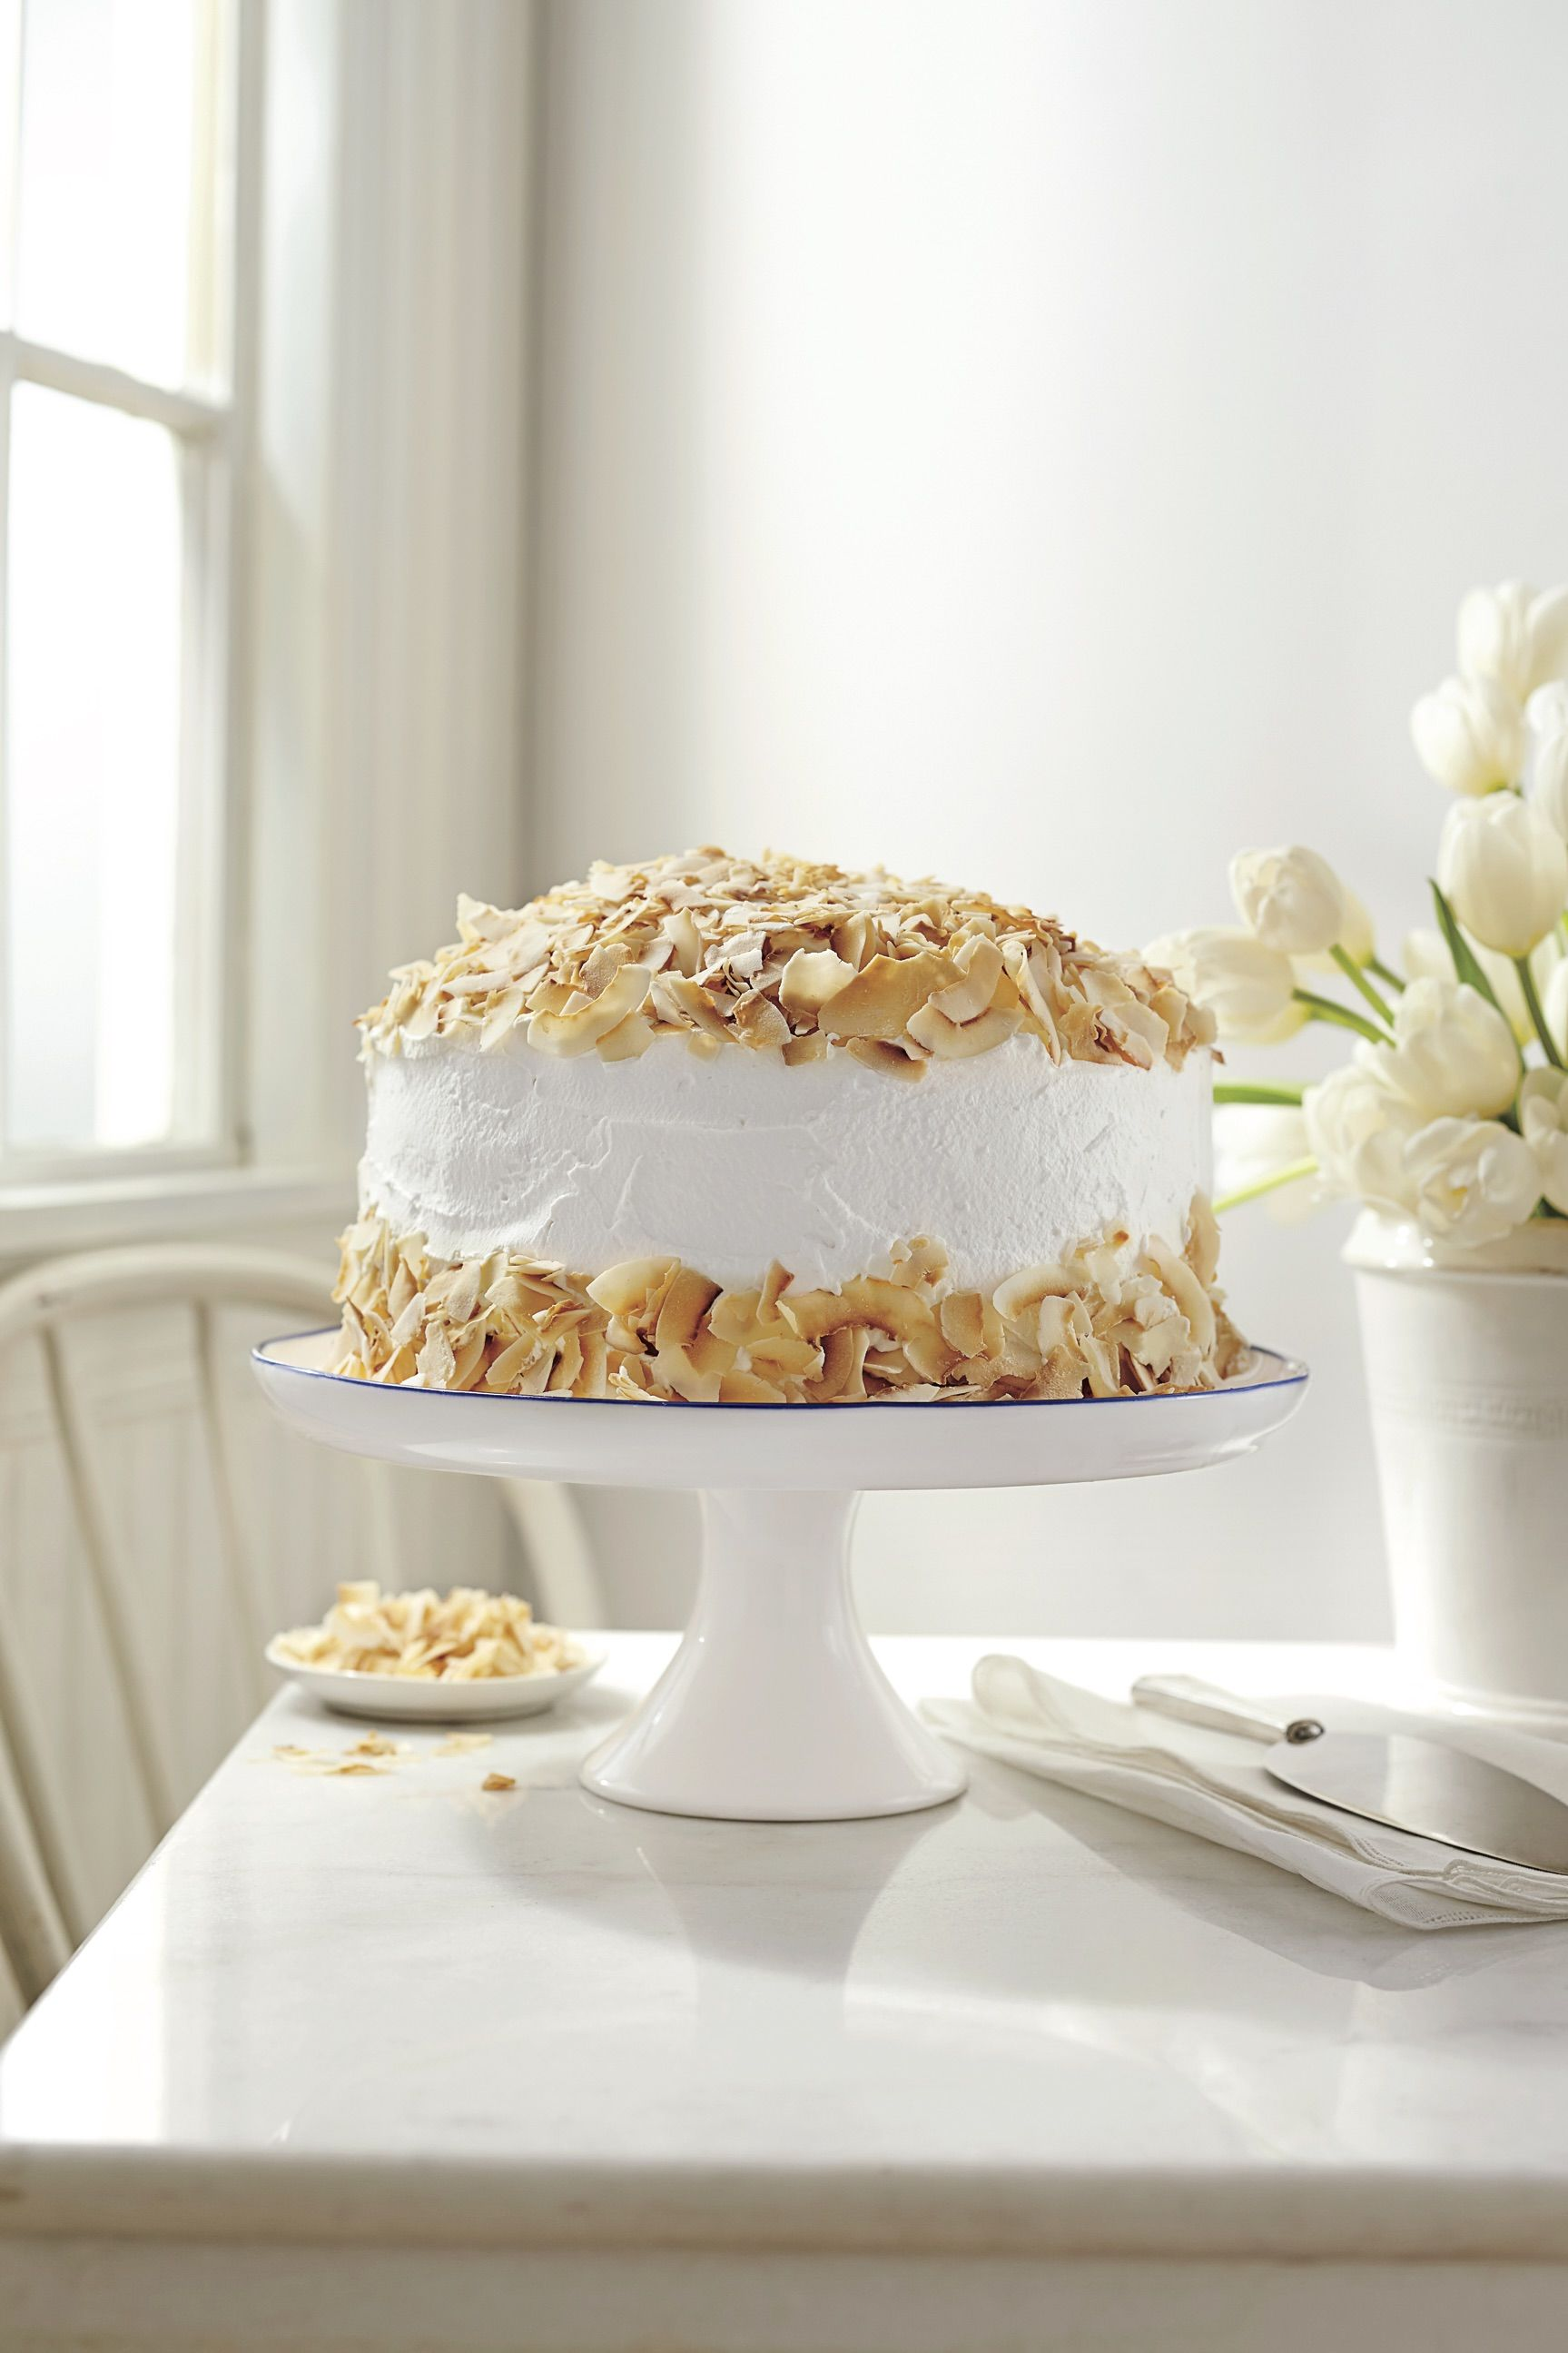 This Is The Only Coconut Cake Recipe You Need This Easter